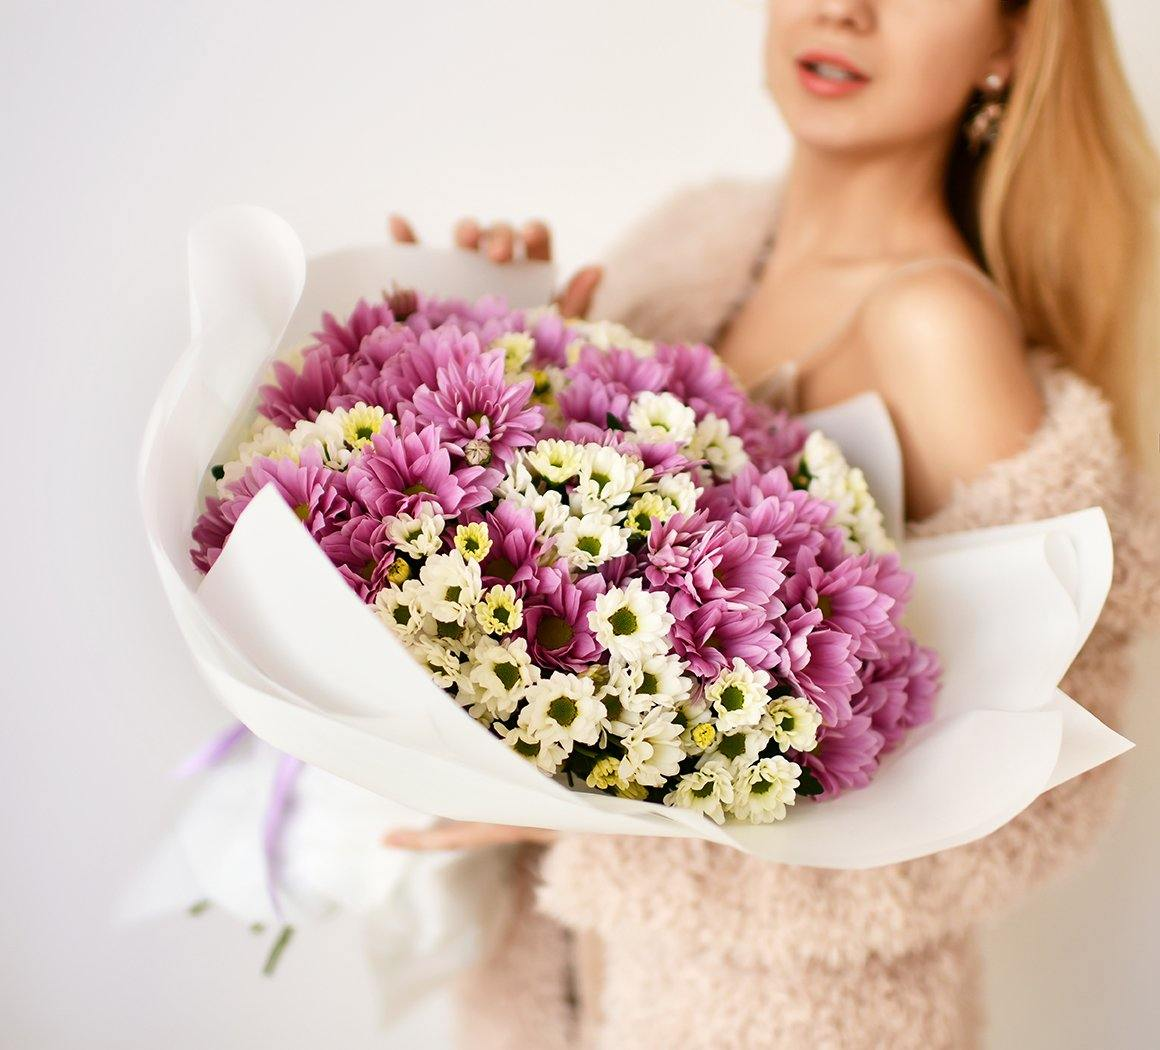 Mrs. Dalloway Club - Your Flowers Subscription Program